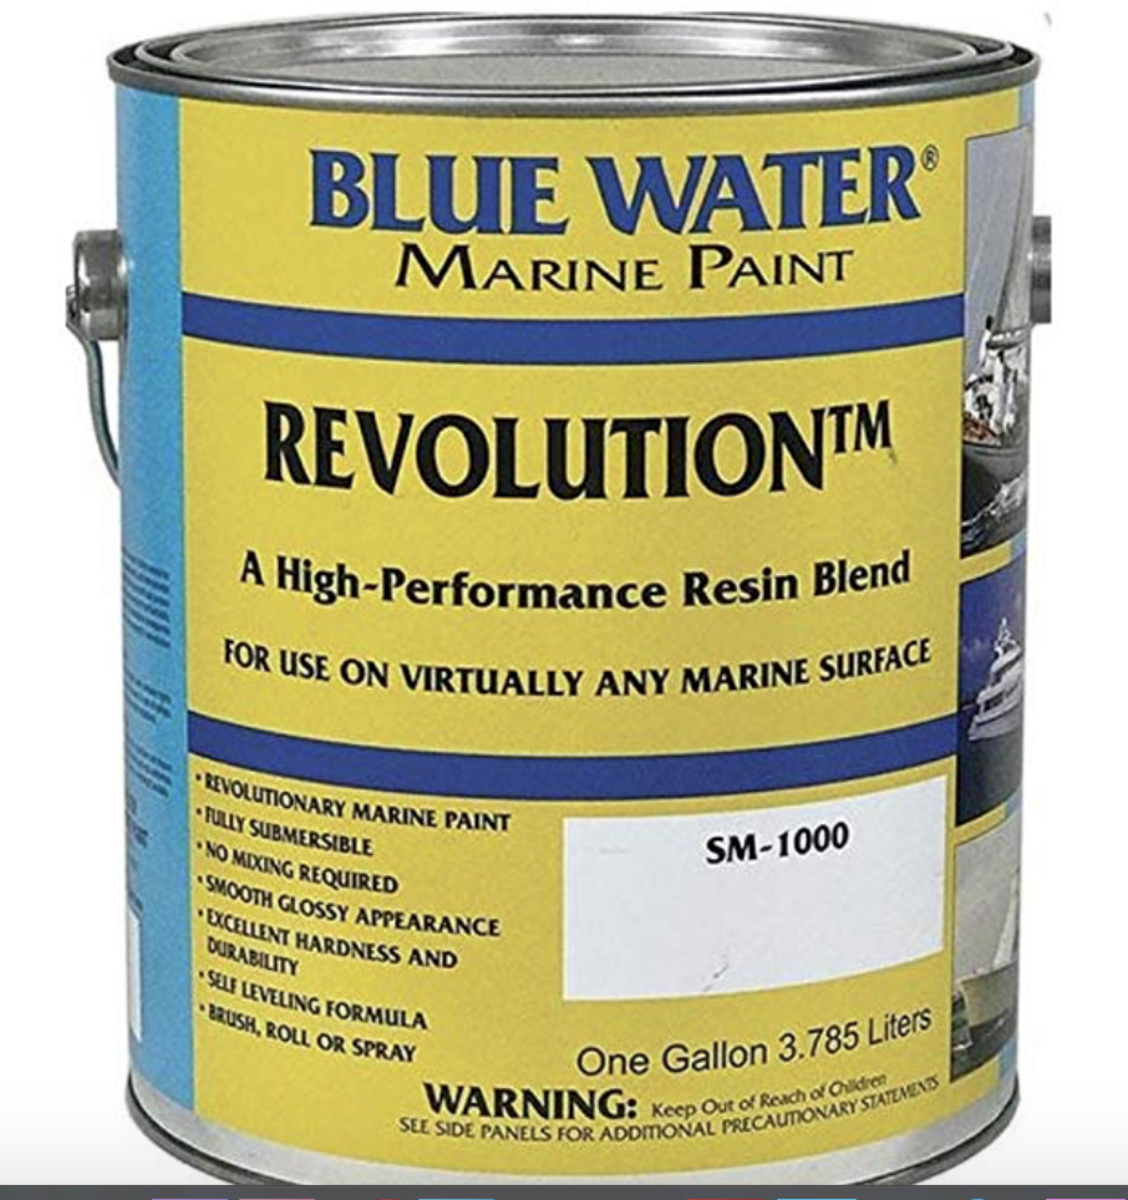 Sea Hawk parent acquires Blue Water paints - Trade Only Today